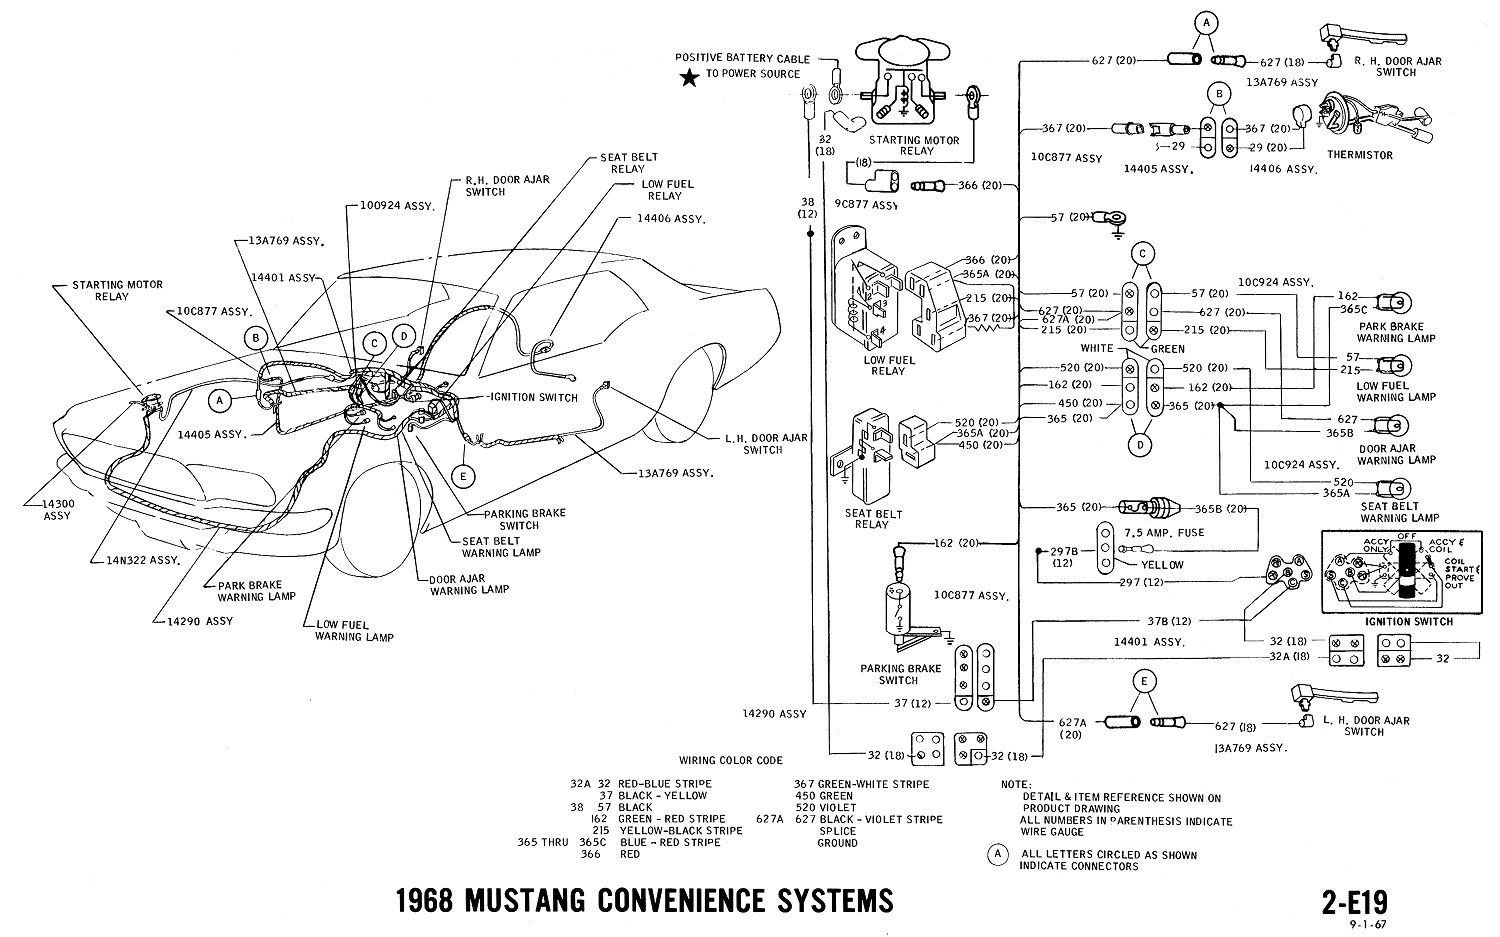 1969 mustang wiring harness wiring diagrams schematics camaro wiring diagram 1968 mustang wiring diagrams and vacuum schematics average joe 1965 mustang dash wiring diagram 1969 mustang